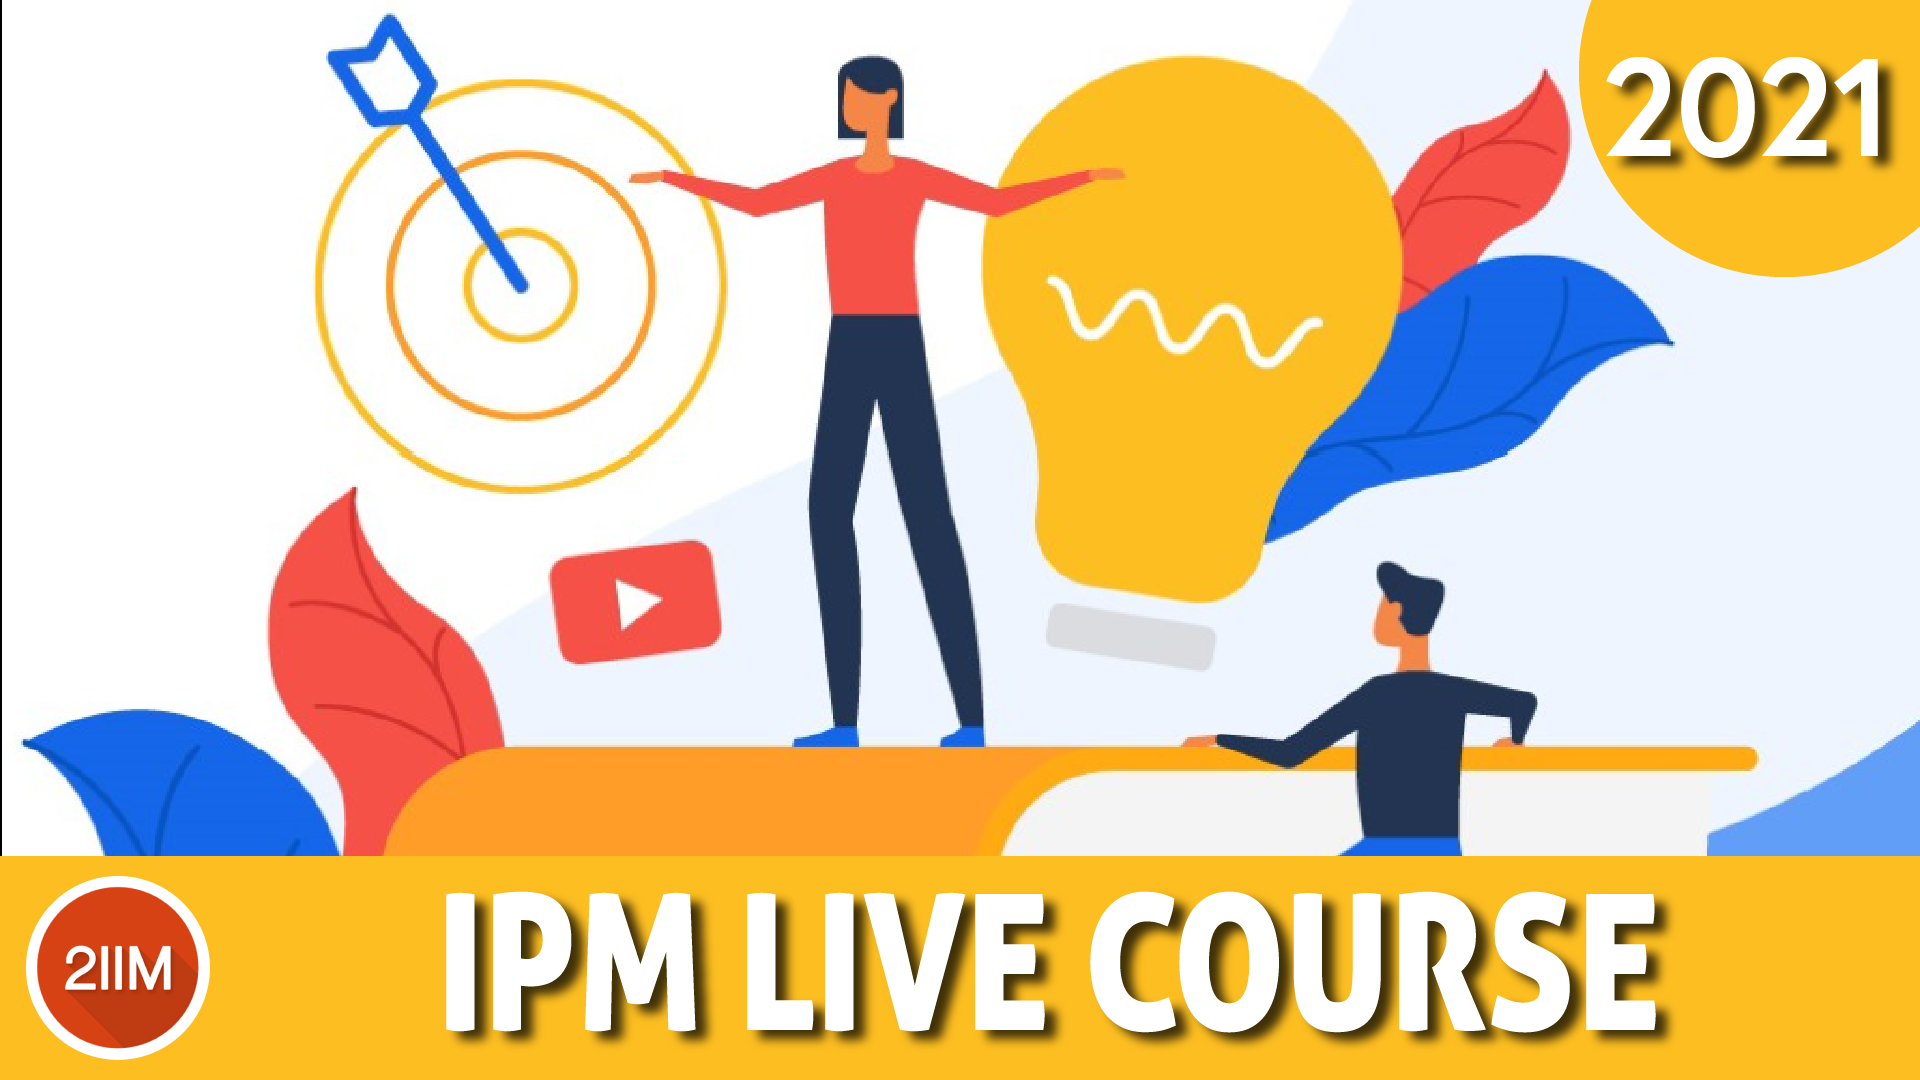 IPM Live Online Course for 2021